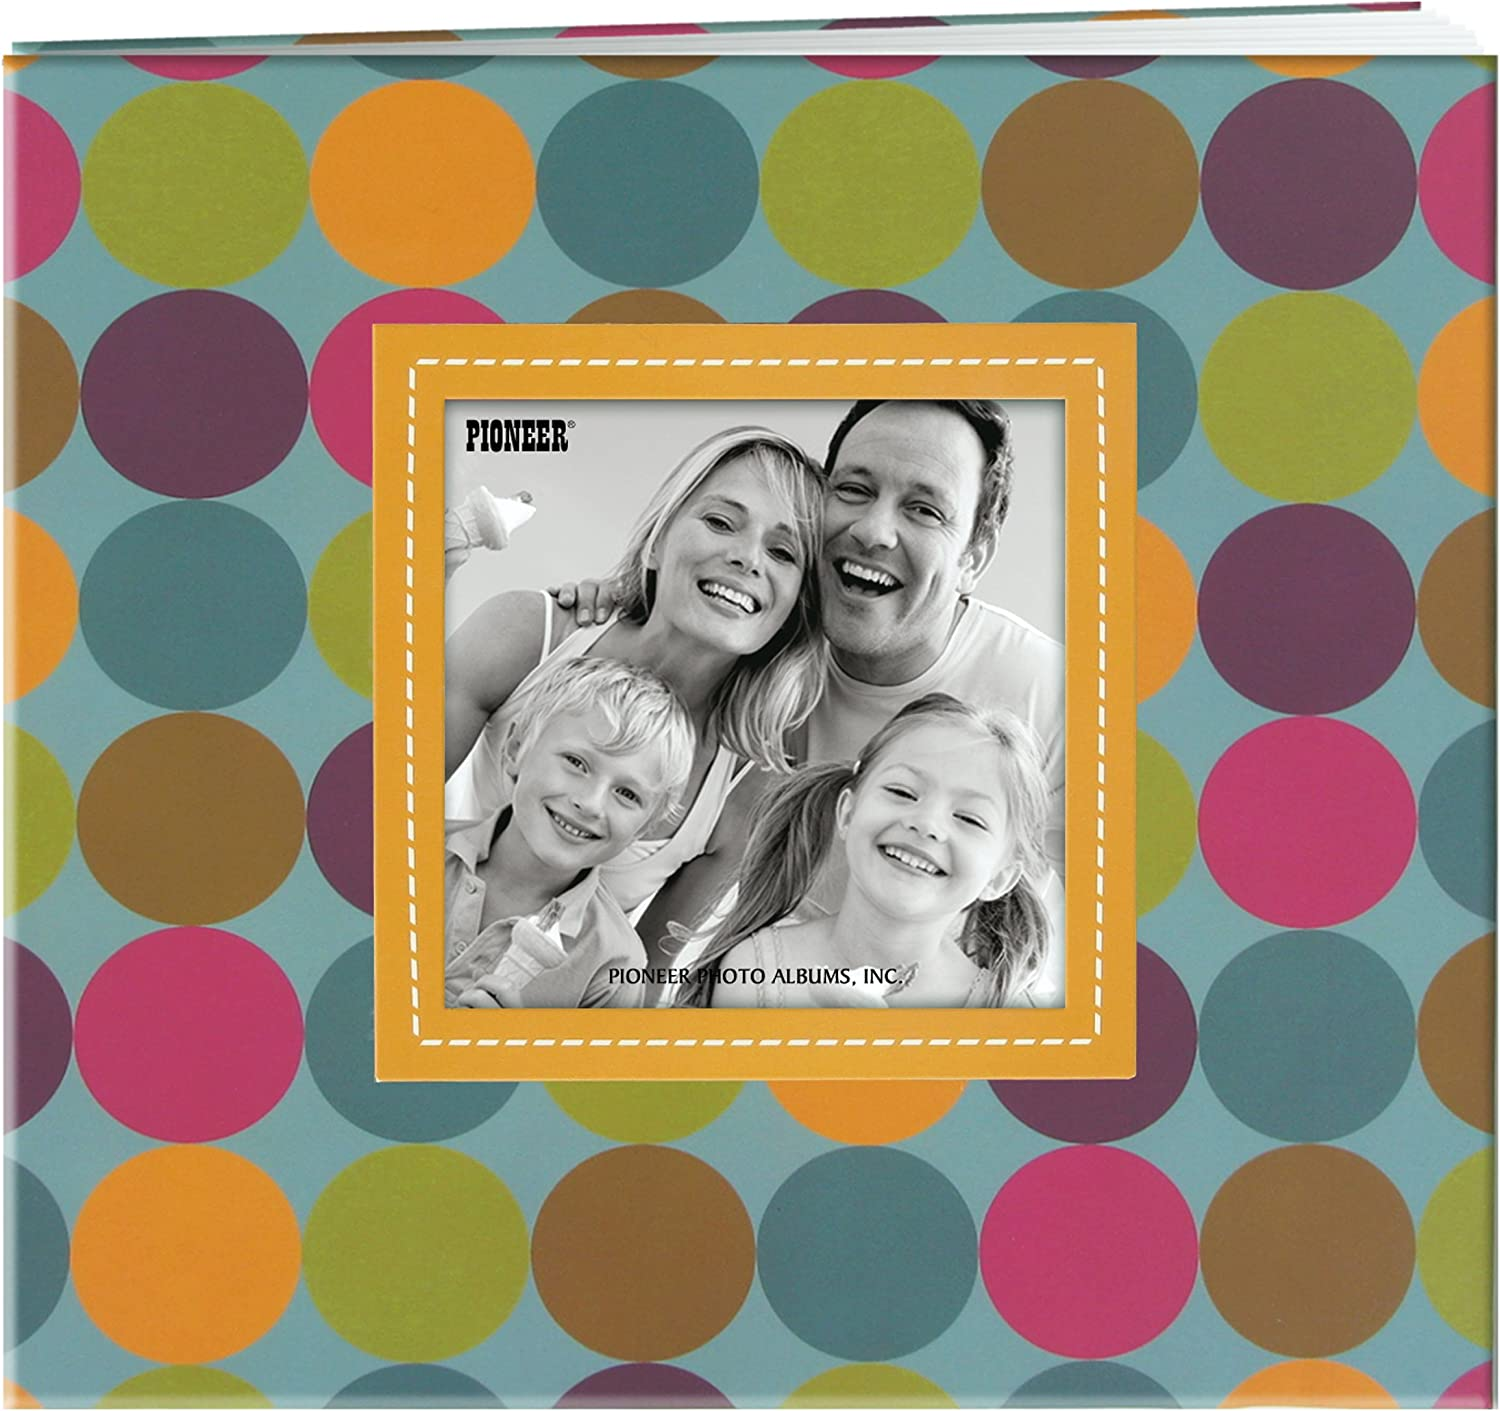 Black MCS MBI 9.6x8.5 Inch Fashion Fabric Scrapbook Album with 8x8 Inch Pages with Photo Opening 802810